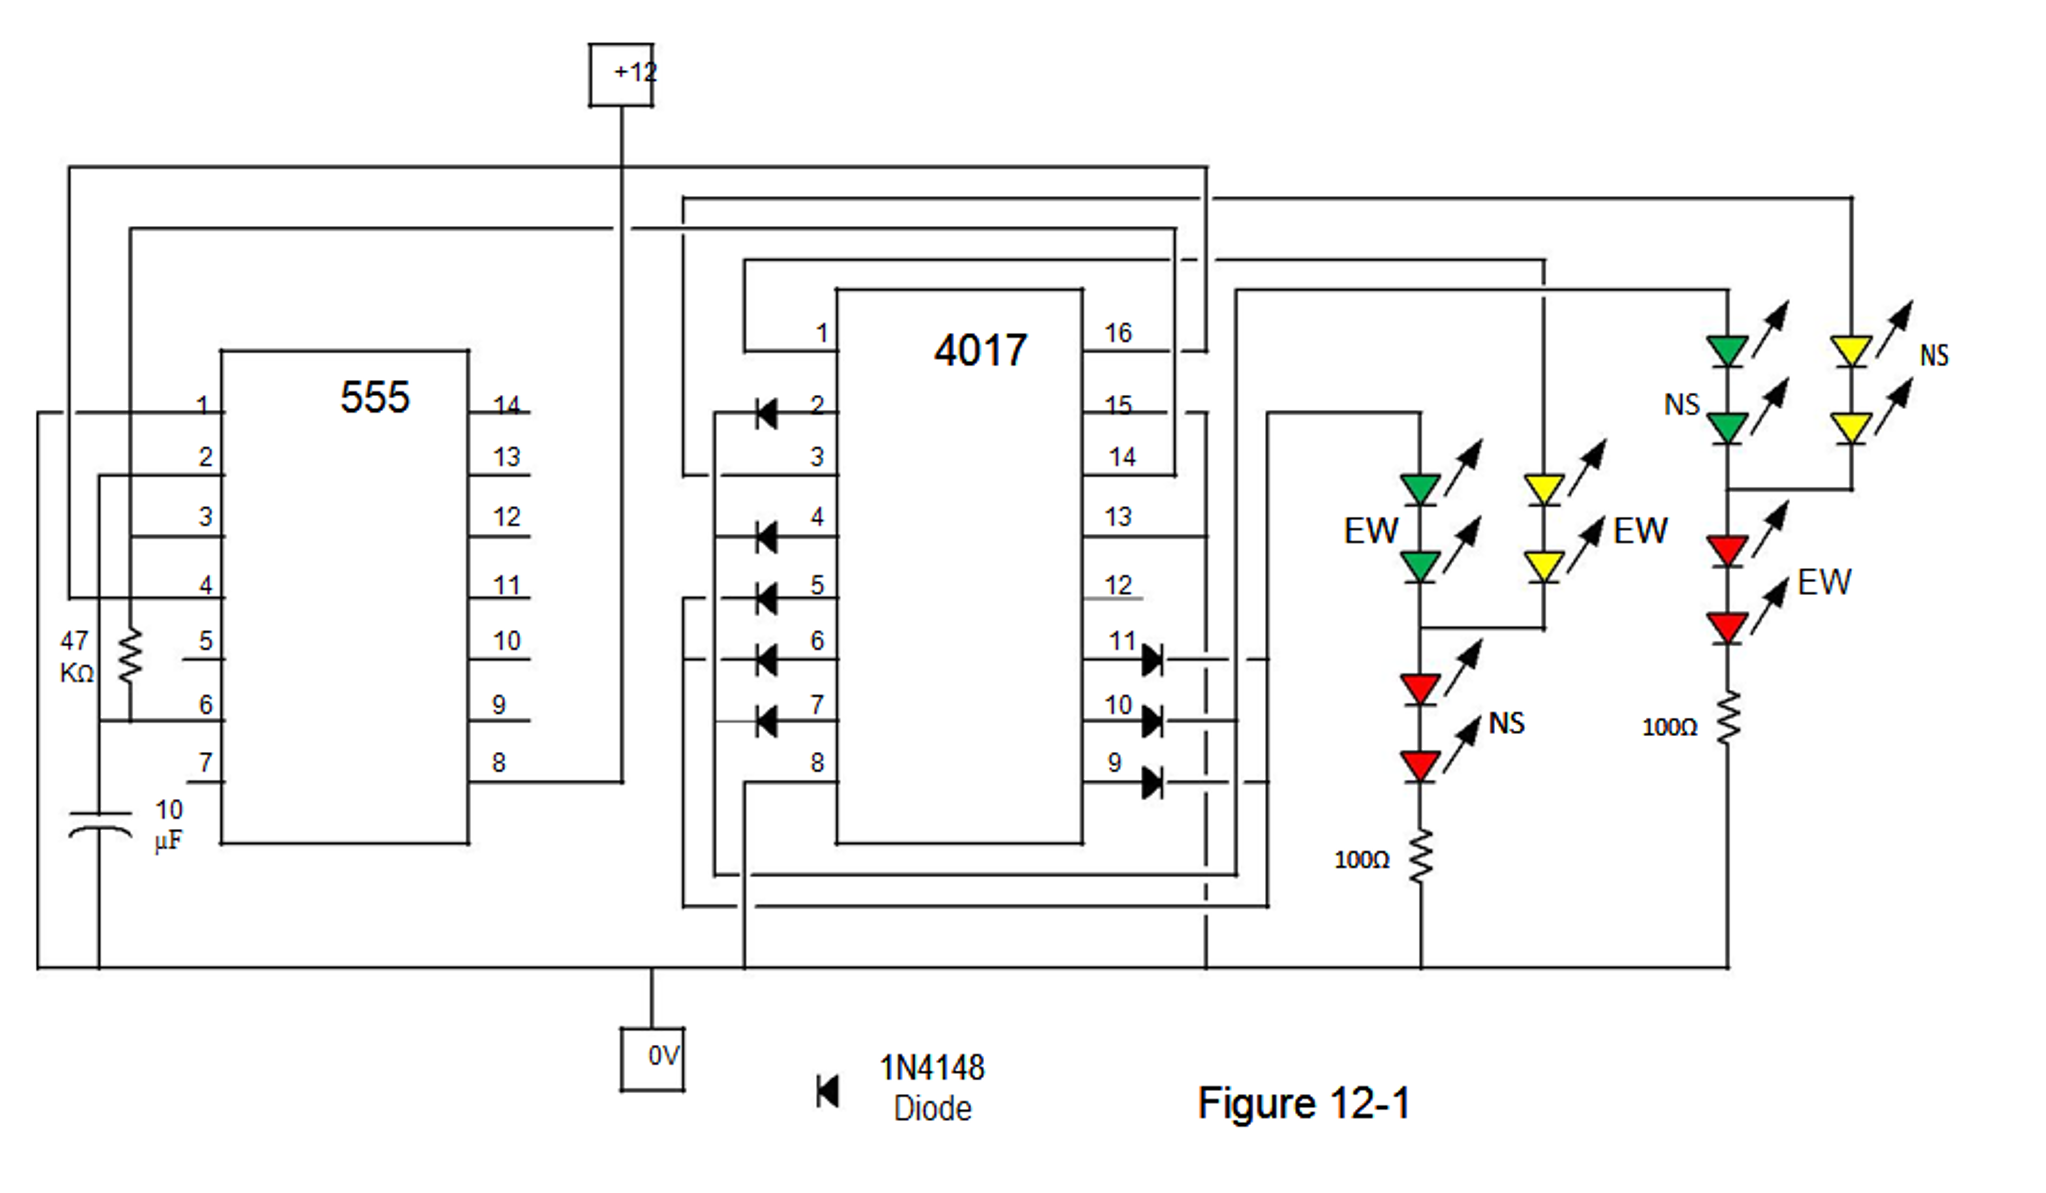 Not Sure How To Make The Circuit From First Pi 4017 Diagram Picture Of Figure 12 1 On Multisim Pin Configuration 555 Timer Is 2nd And 5 Stage